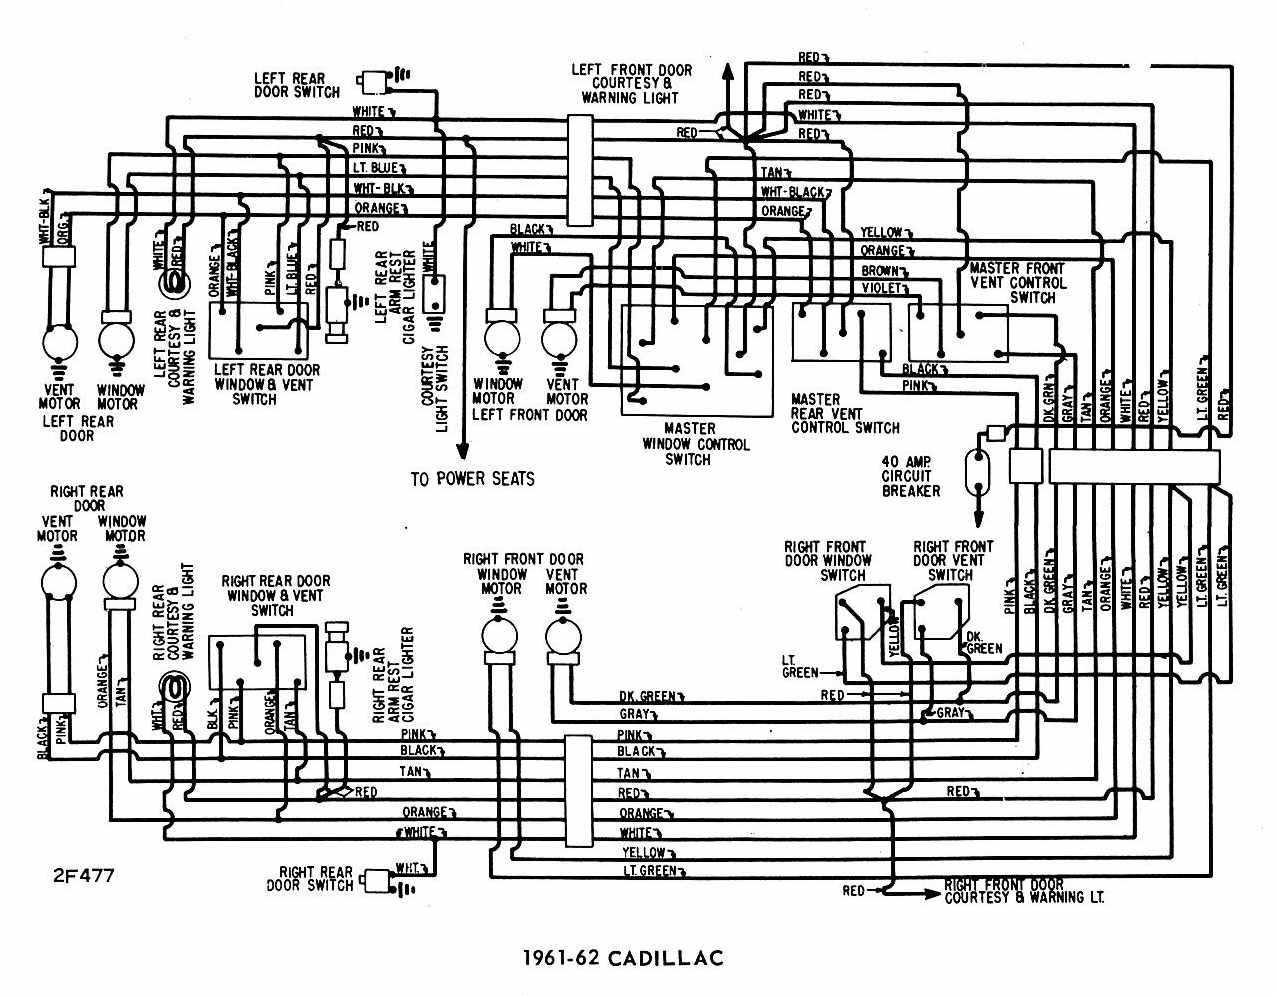 0EF18 Vehicle Wiring Diagrams 2000 Cadillac Seville Radio Diagram ... 4.6 northstar engine diagram Sounds Like You